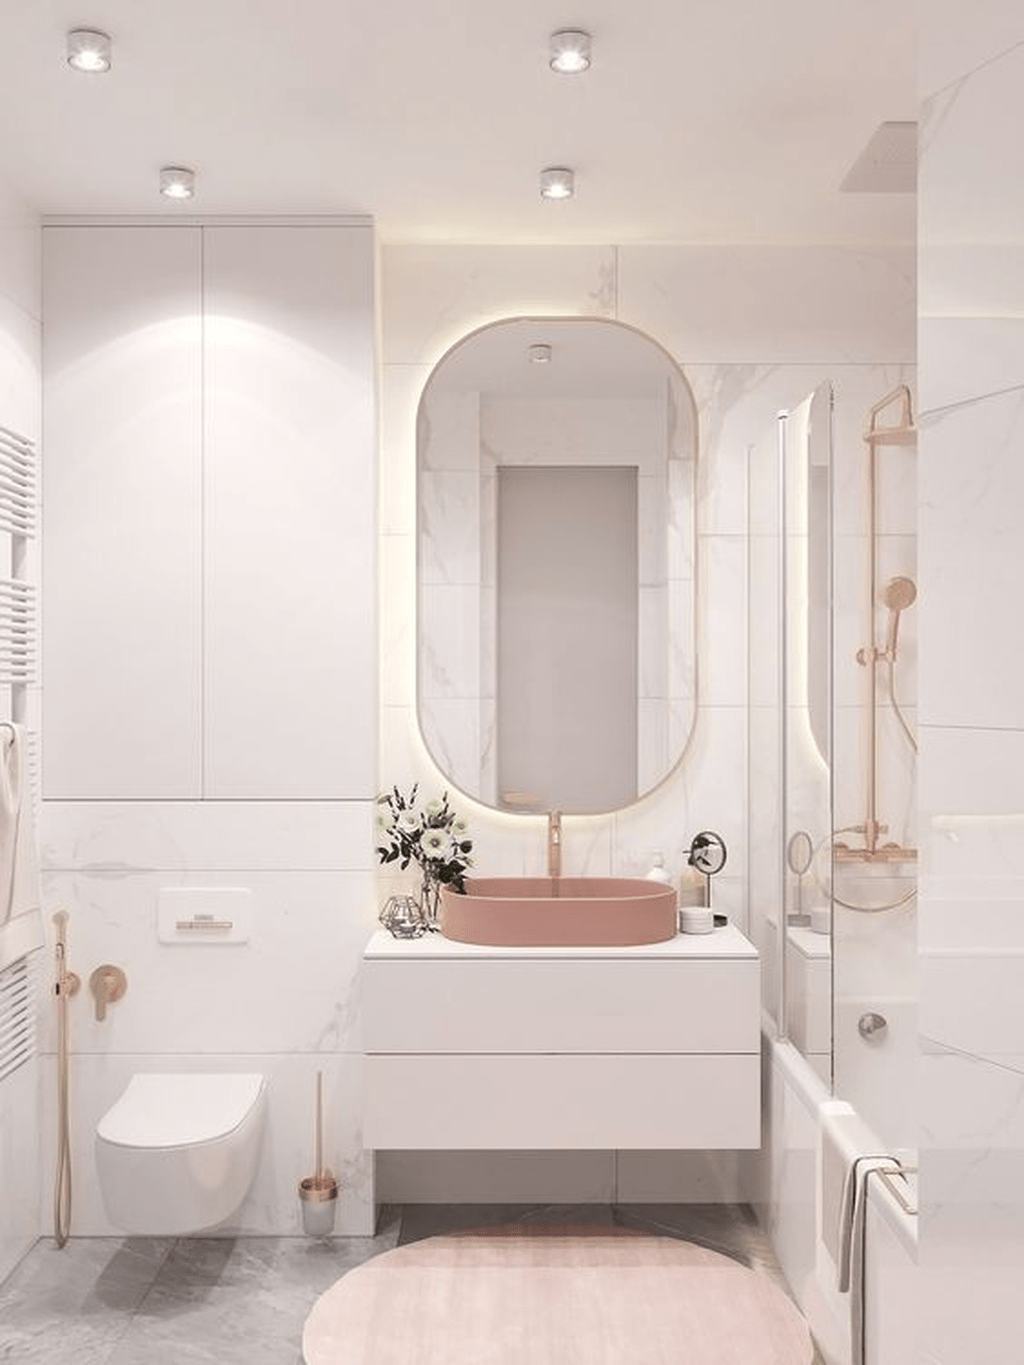 Inspiring Bathroom Interior Design Ideas 36